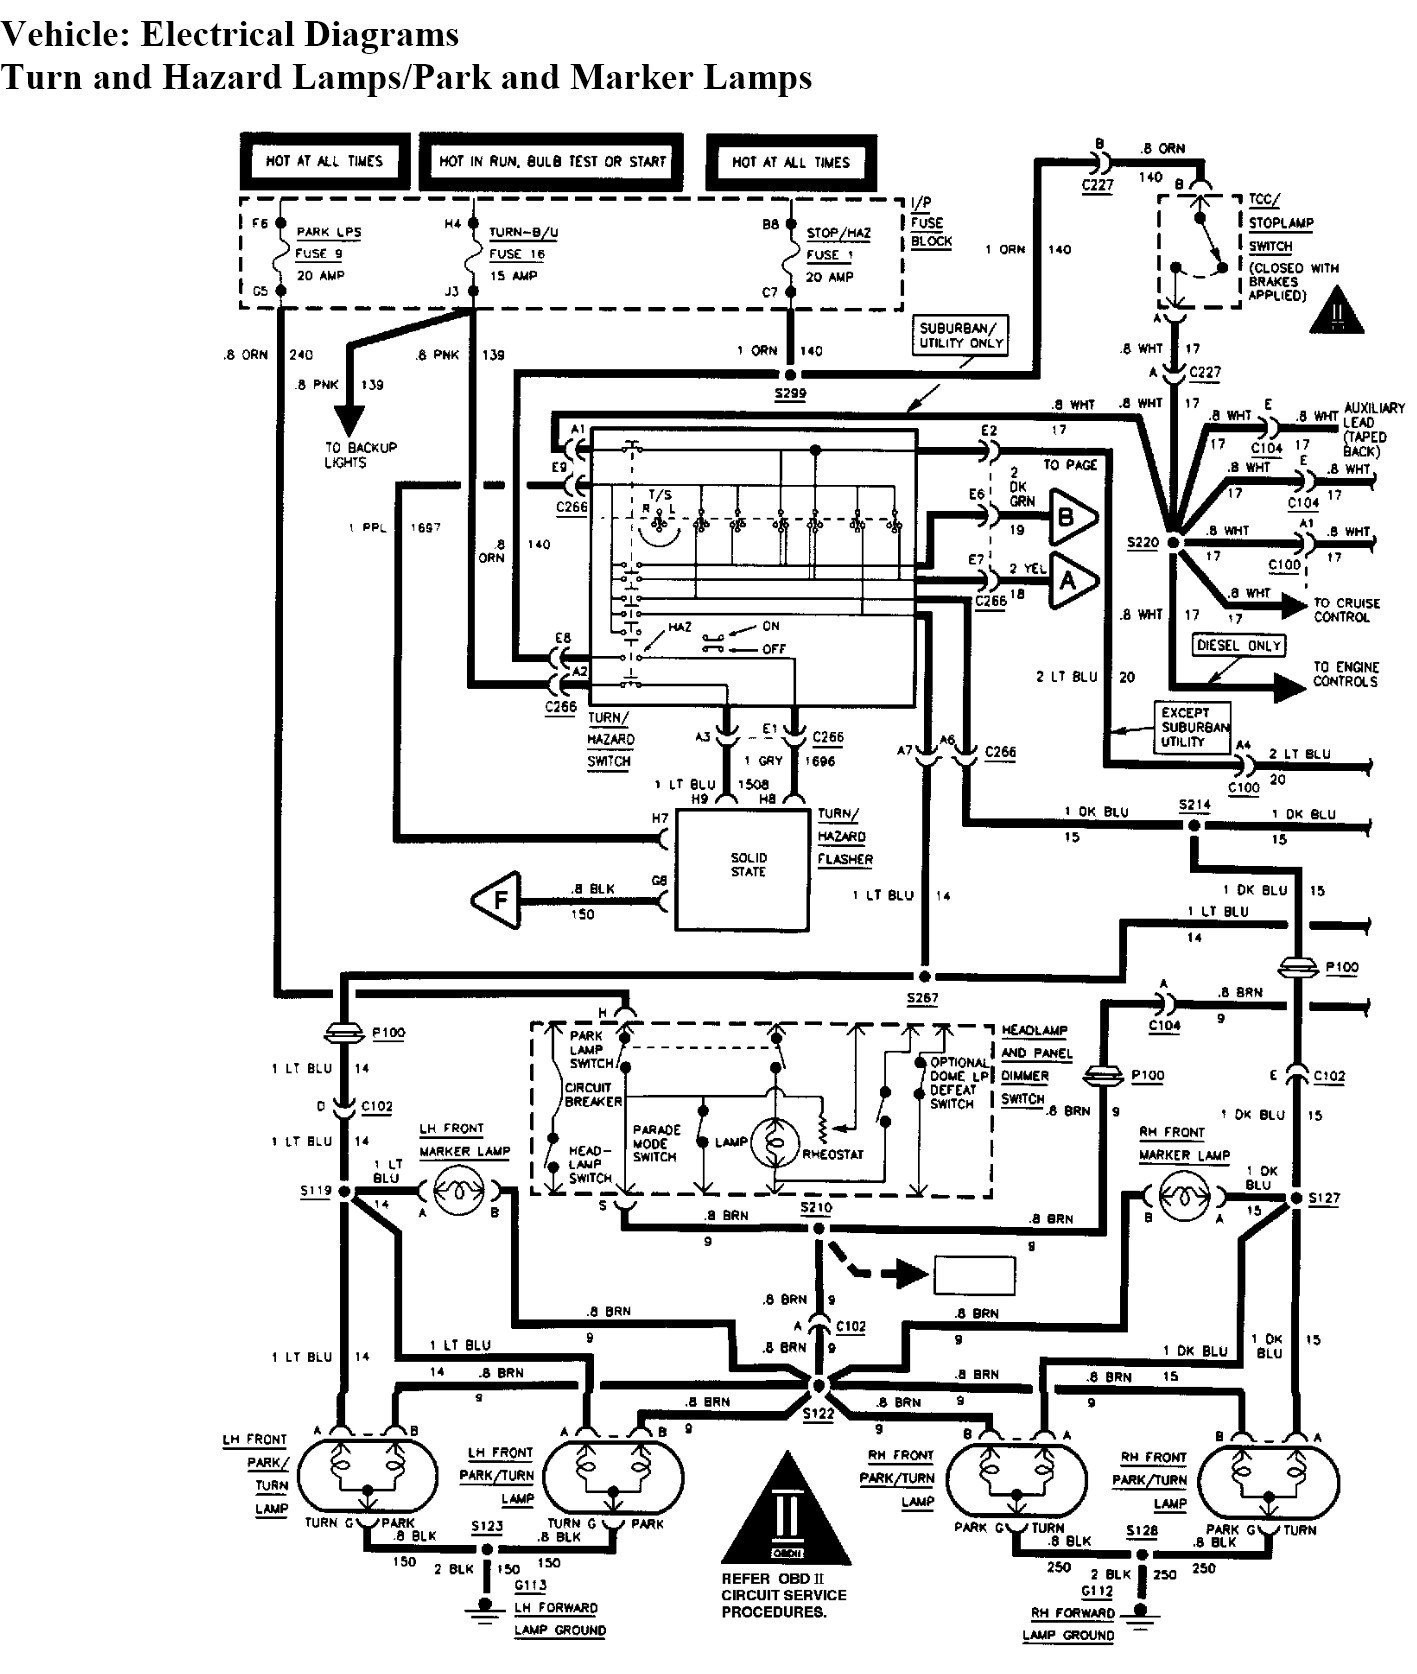 1994 Chevy 1500 Headlight Wiring Diagram Wiring Diagram Frankmotors Es